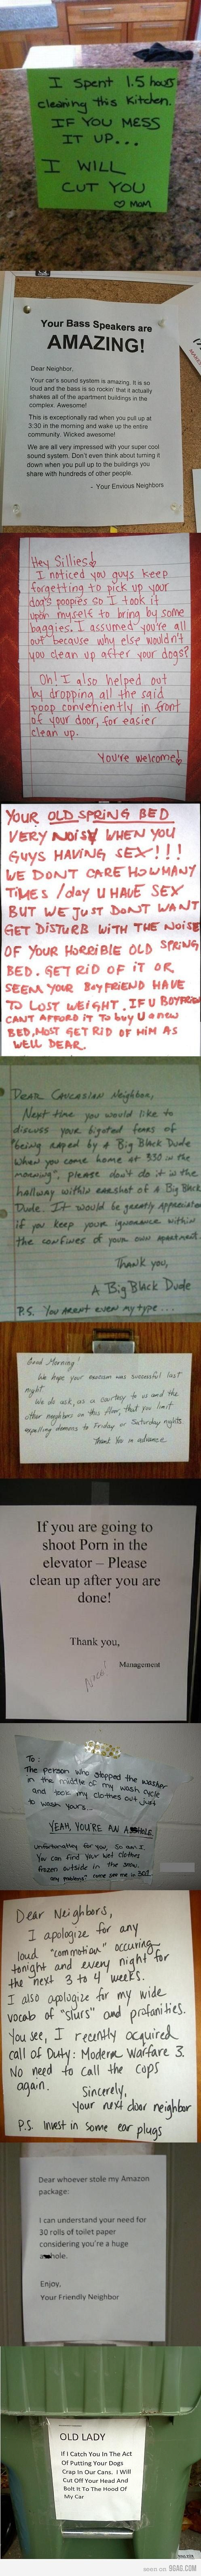 Awesome, makes me want to write a note for my neighbor. lol